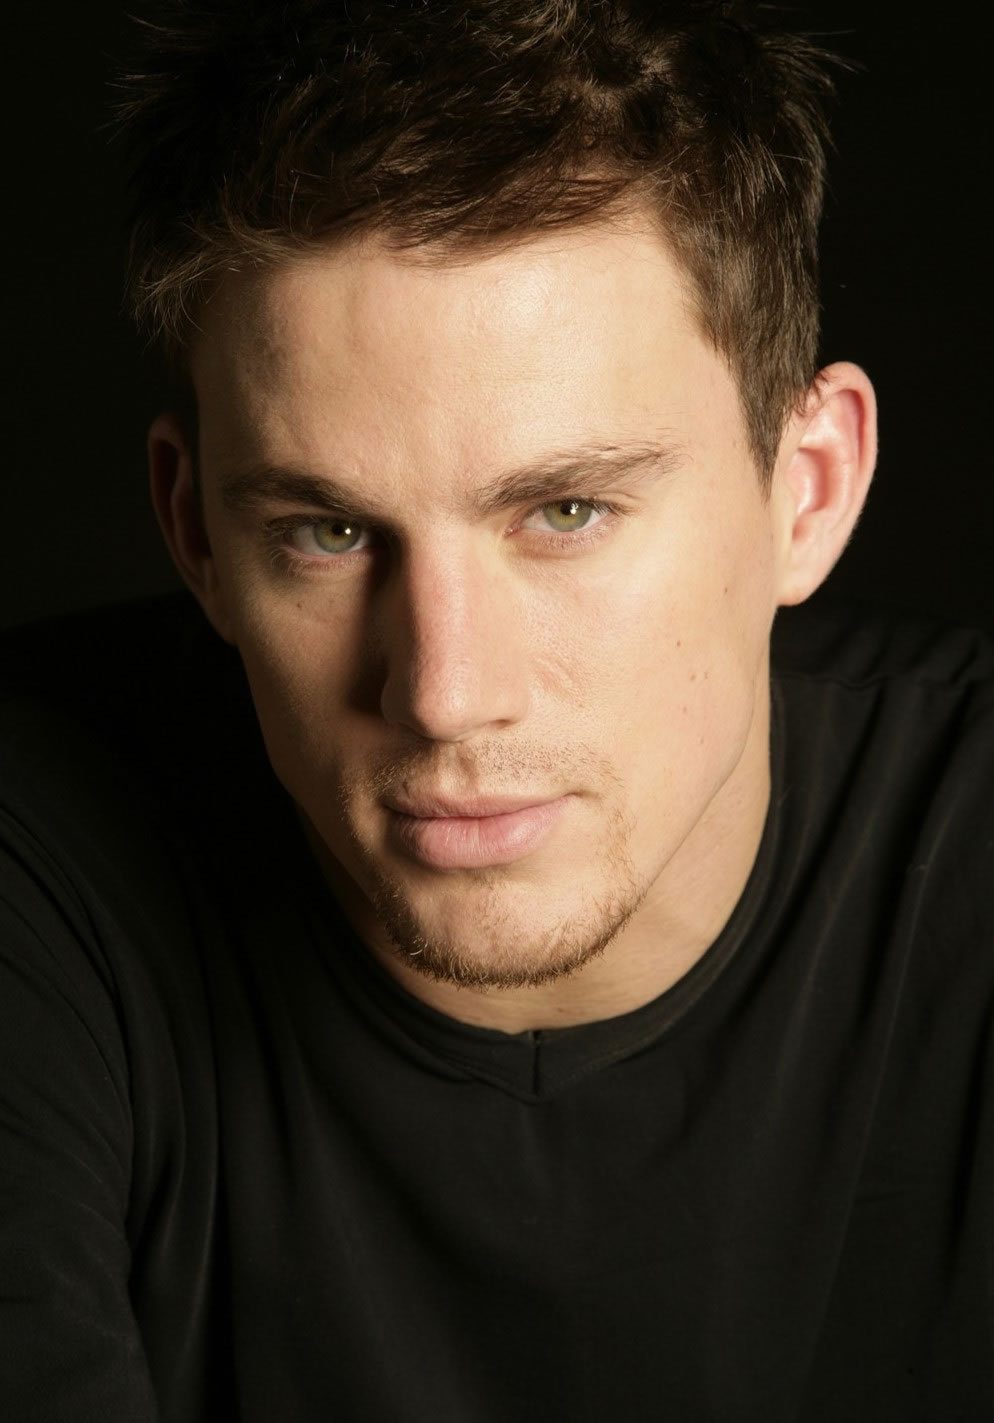 Channign Tatum mp1 - Channing Tatum Photo (222709) - Fanpop Channing Tatum